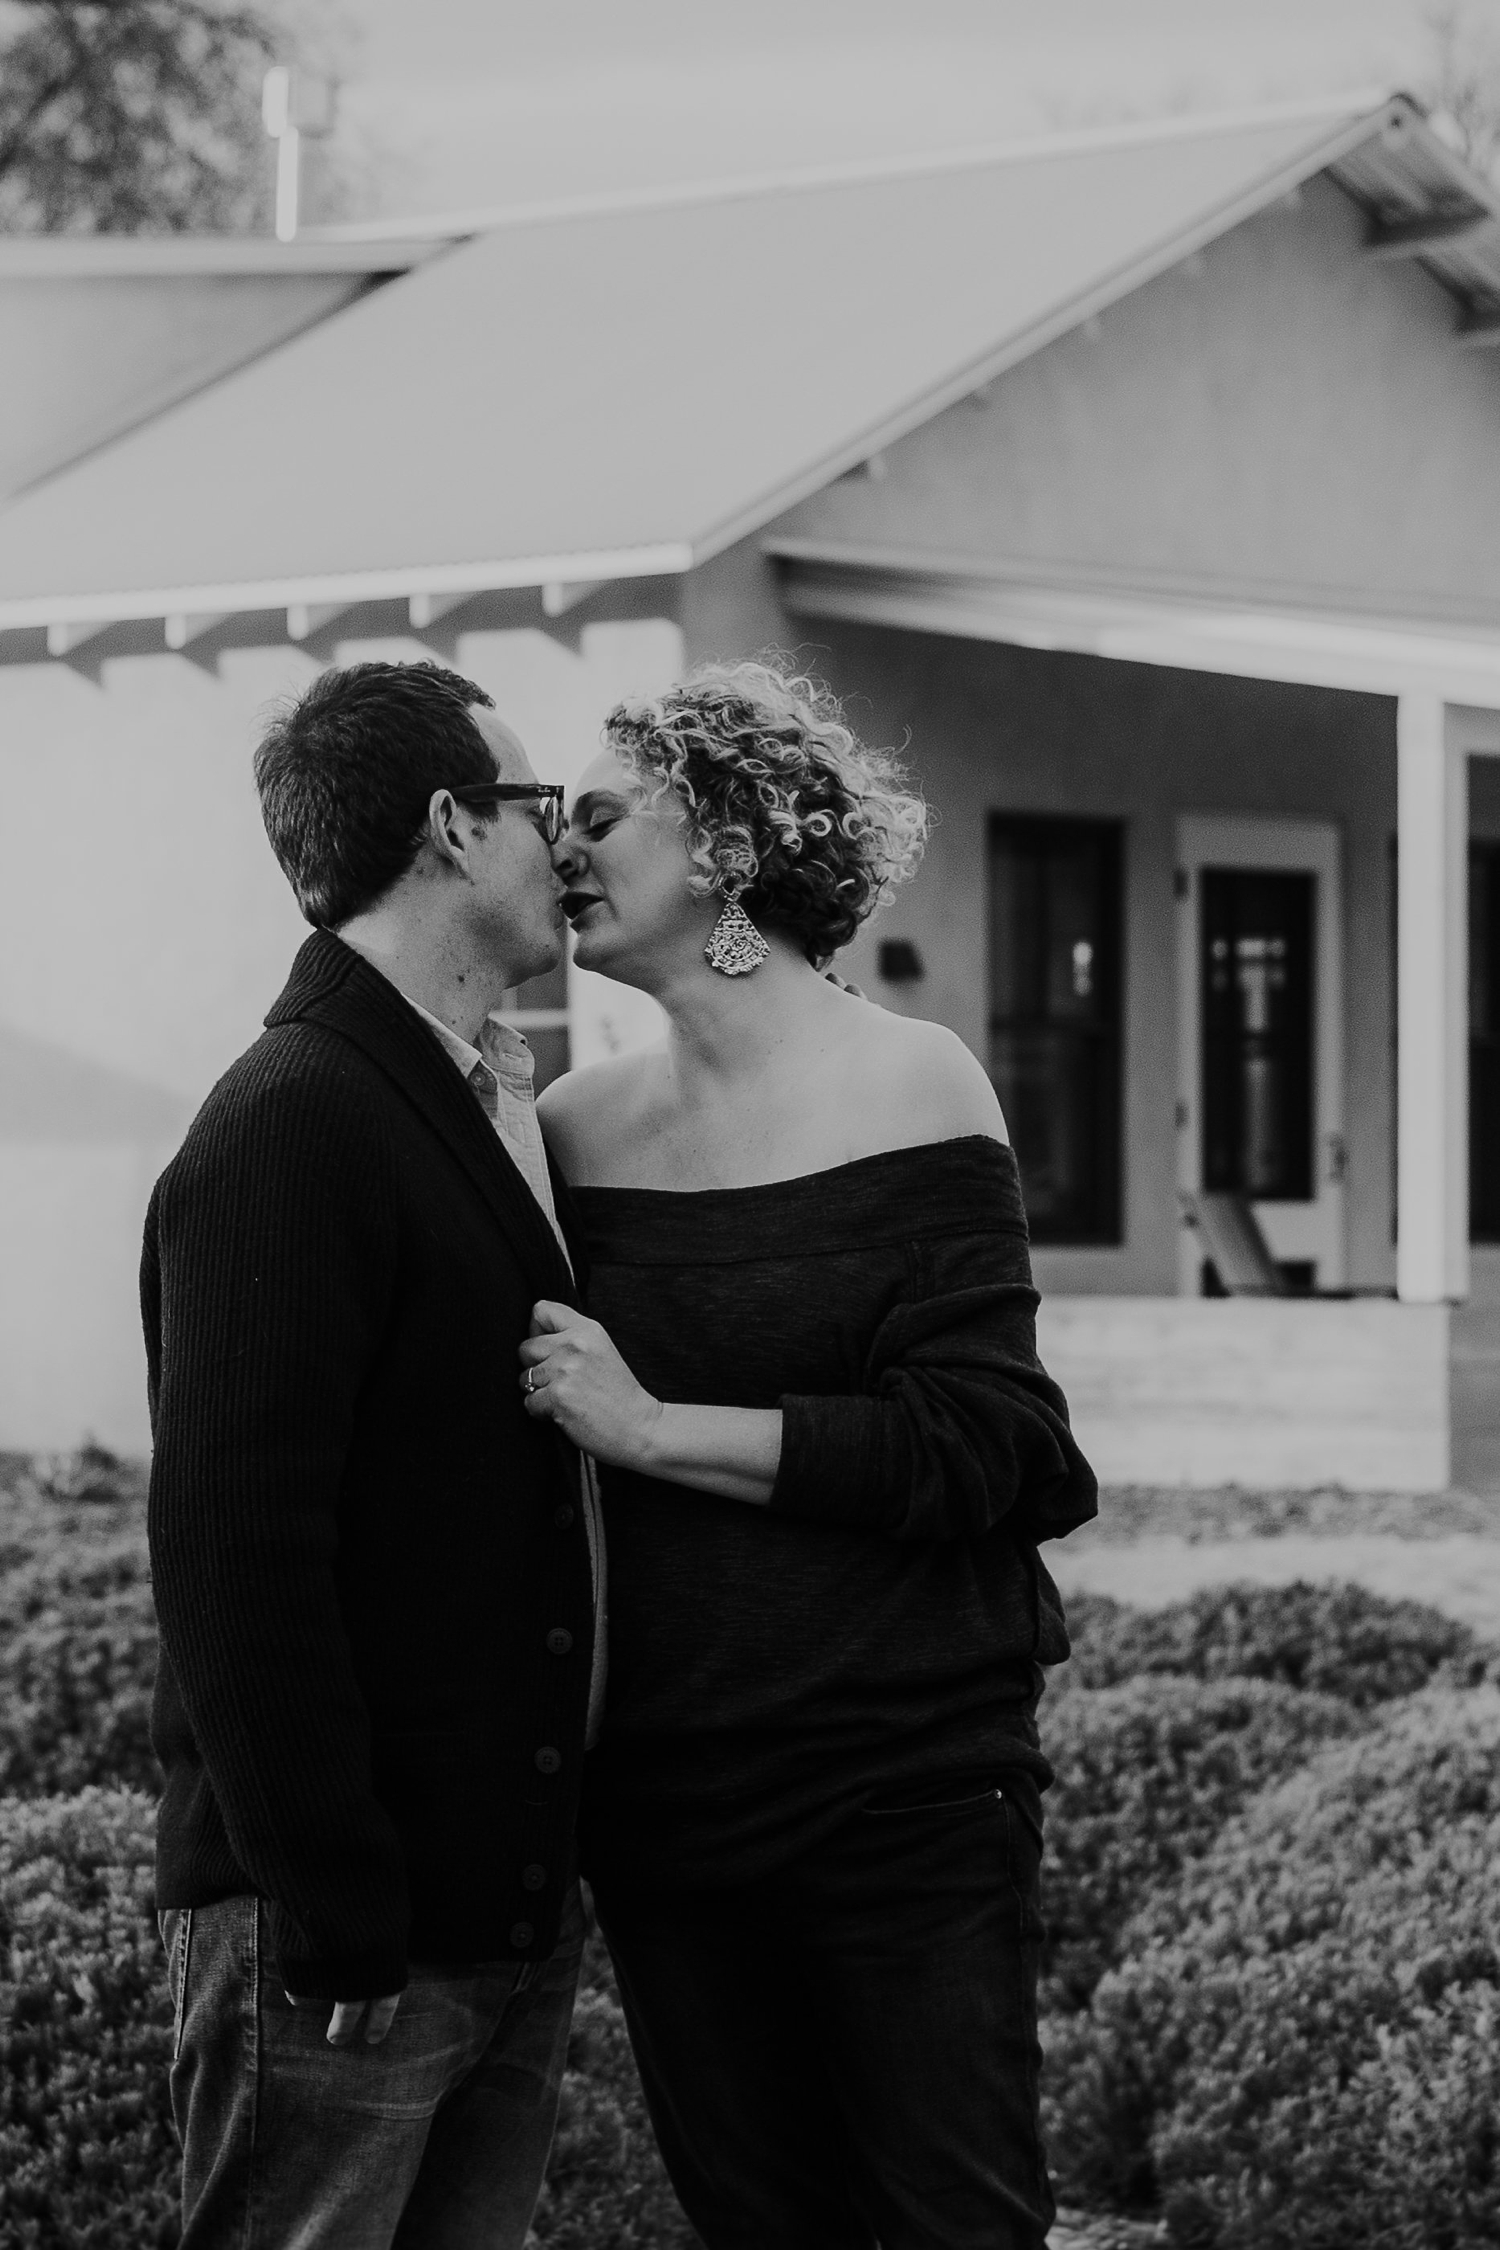 Alicia+lucia+photography+-+albuquerque+wedding+photographer+-+santa+fe+wedding+photography+-+new+mexico+wedding+photographer+-+new+mexico+engagement+-+los+poblanos+winter+engagement+-+los+poblanos+fall+wedding_0011.jpg